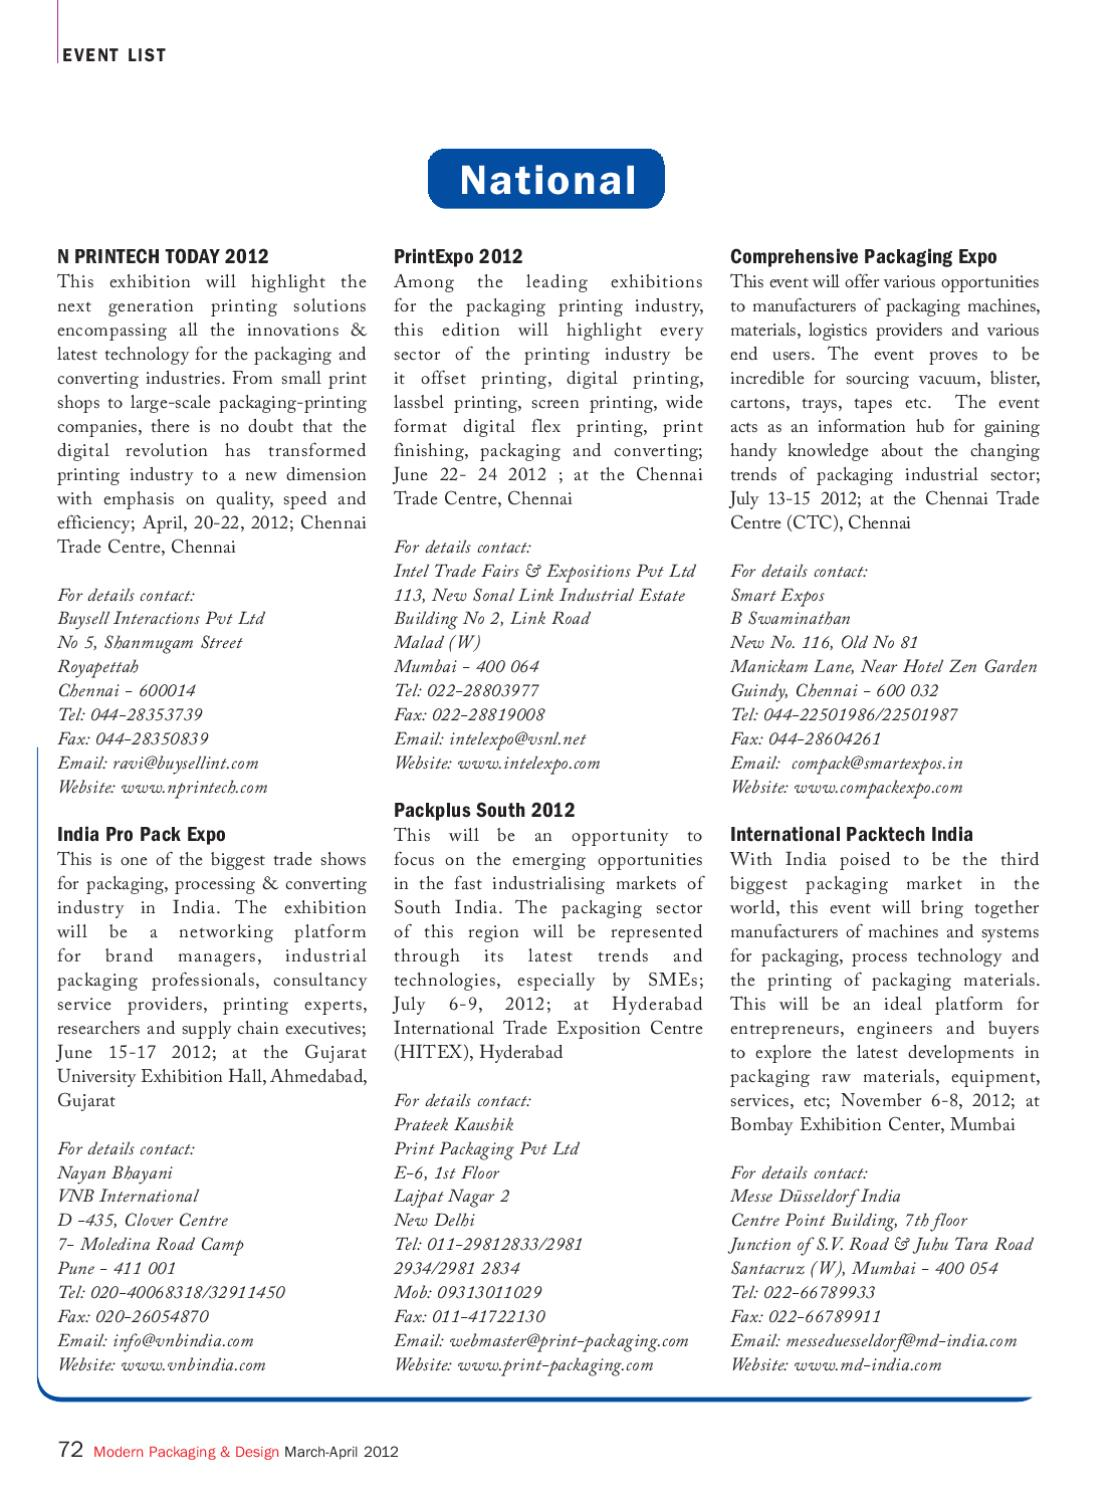 Modern Packaging & Design - March-April 2012 by Infomedia18